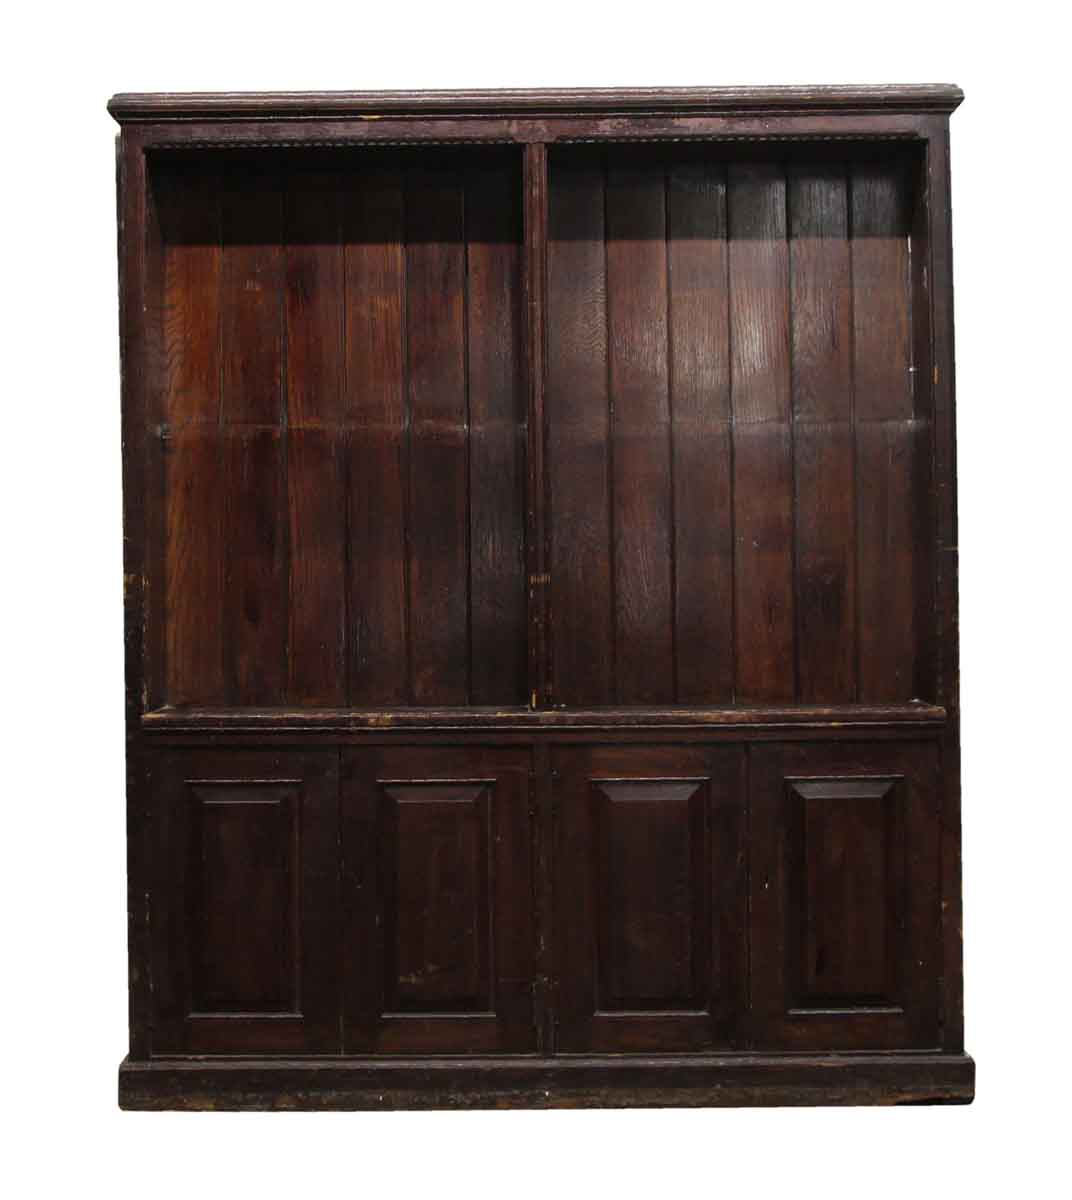 Antique Extra Large Wooden Bookcase | Olde Good Things